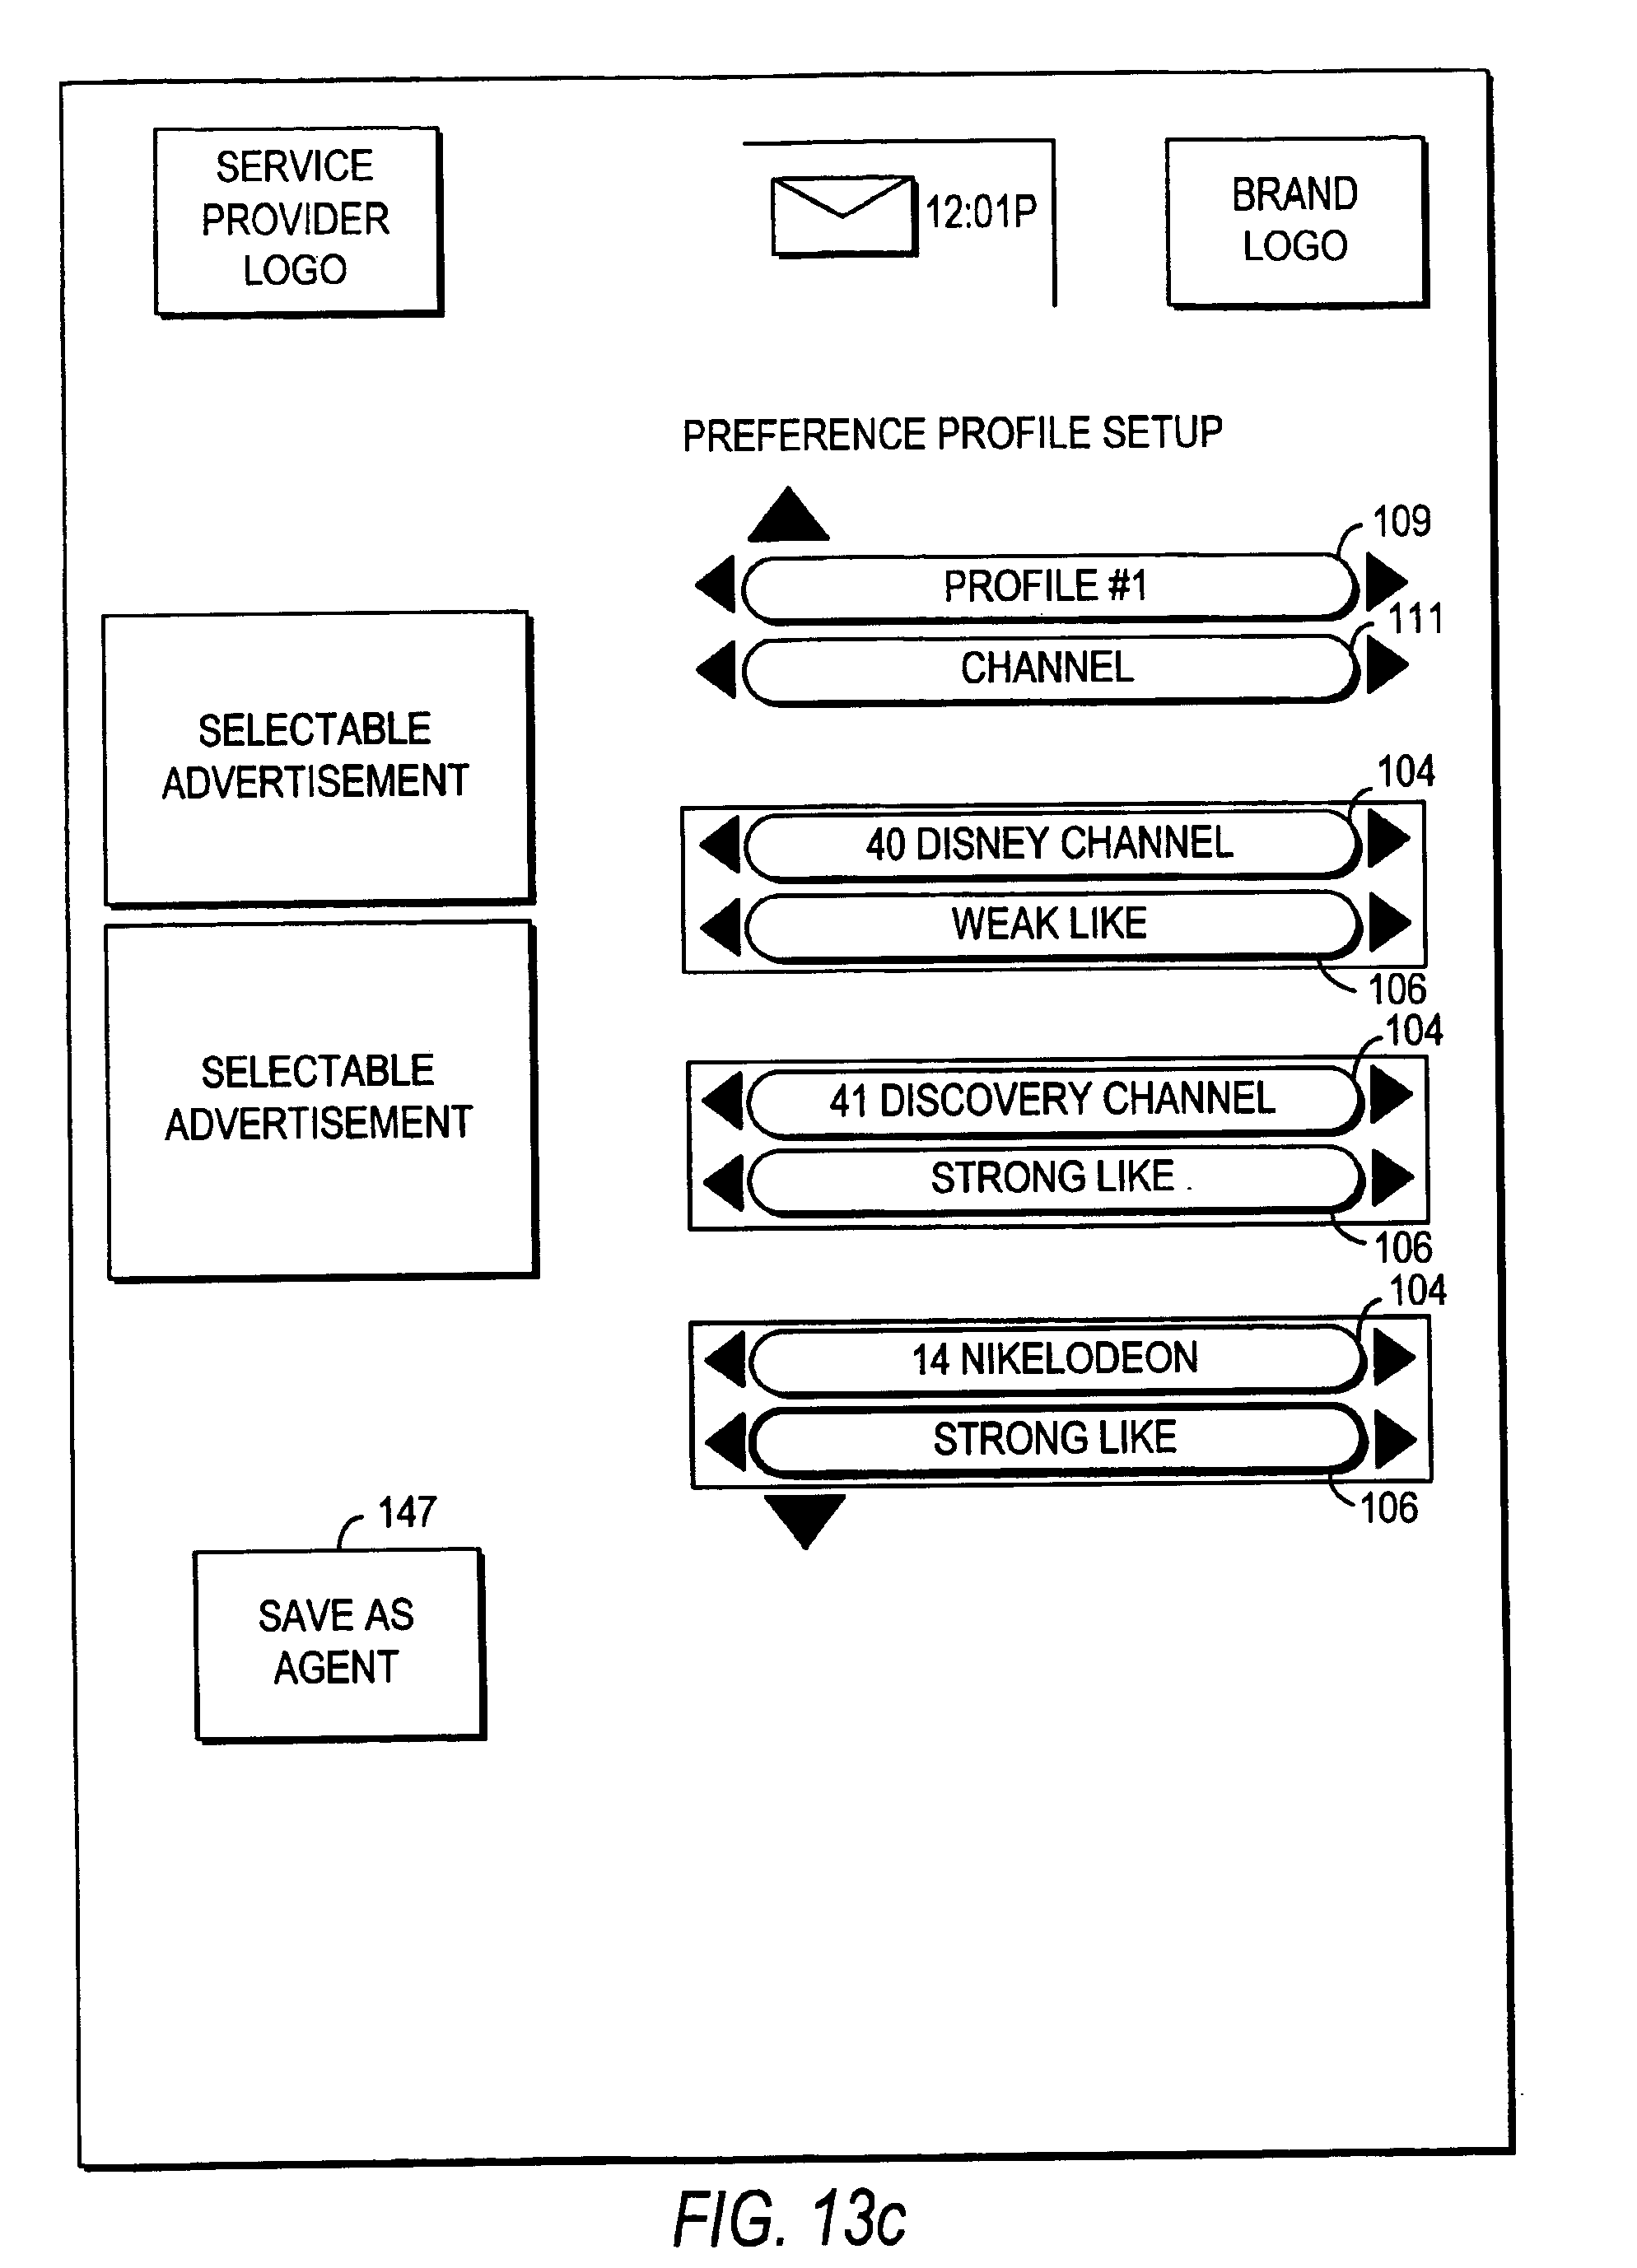 Rovi's '762 patent describes a video menu system that includes ratings.